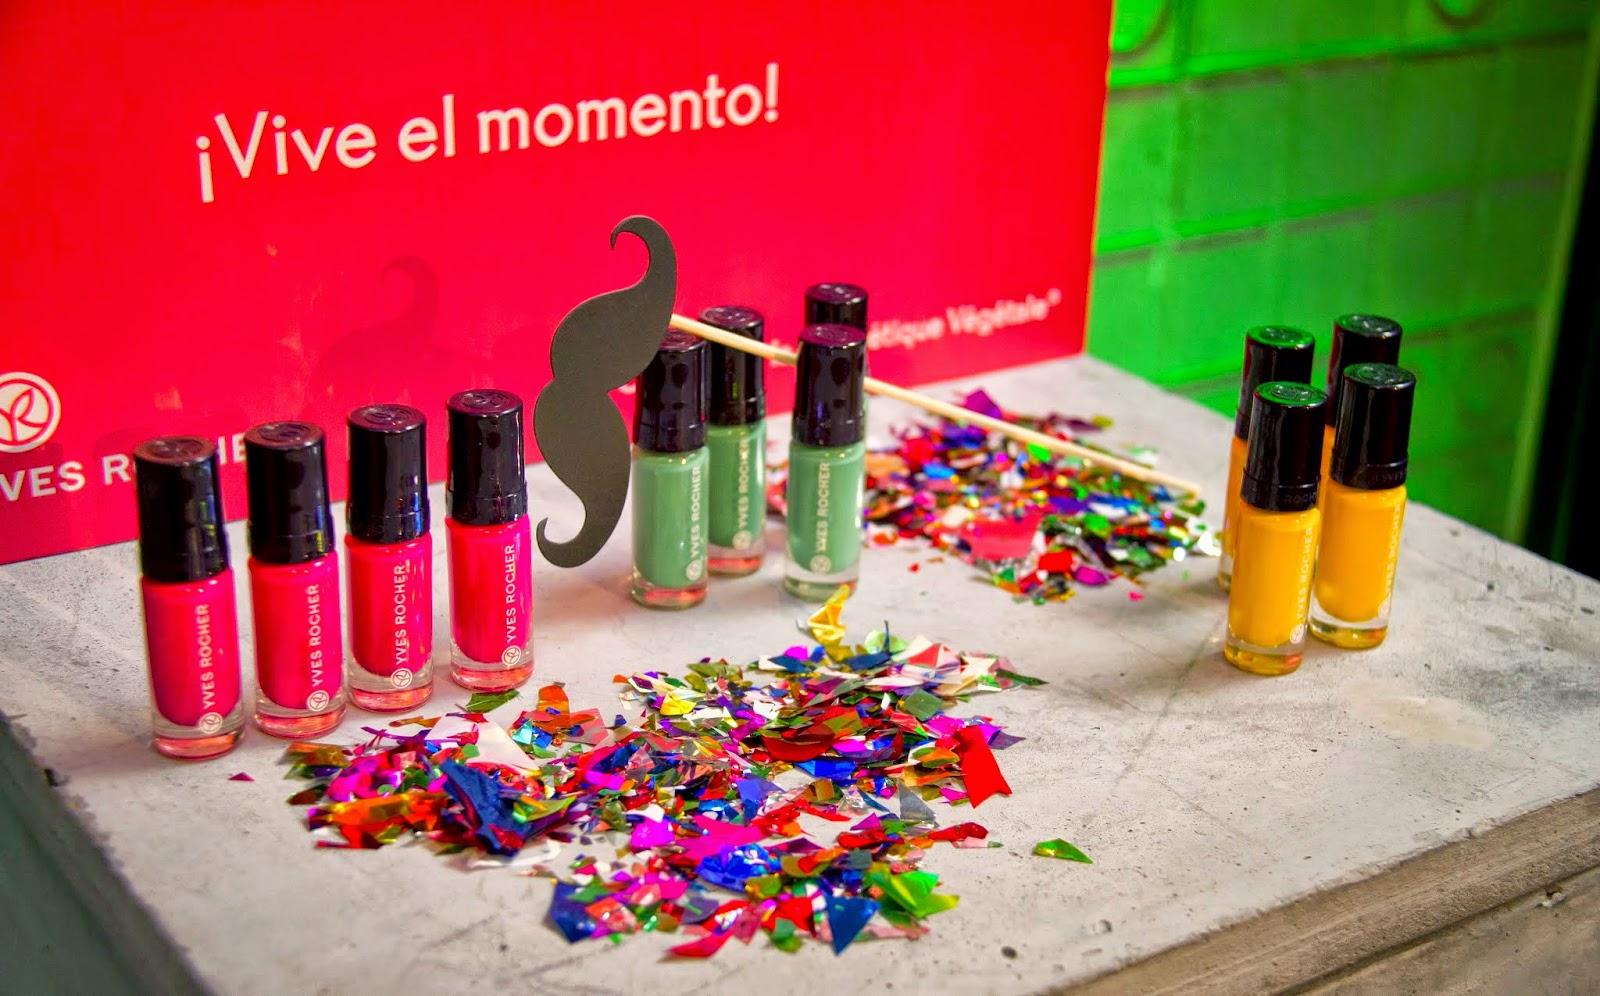 Speaking Colors, Yves Rocher, Esmaltes de Uñas, Nails Style, Beauty, Psicologia del Color, Teoria del Color, Blog de Moda